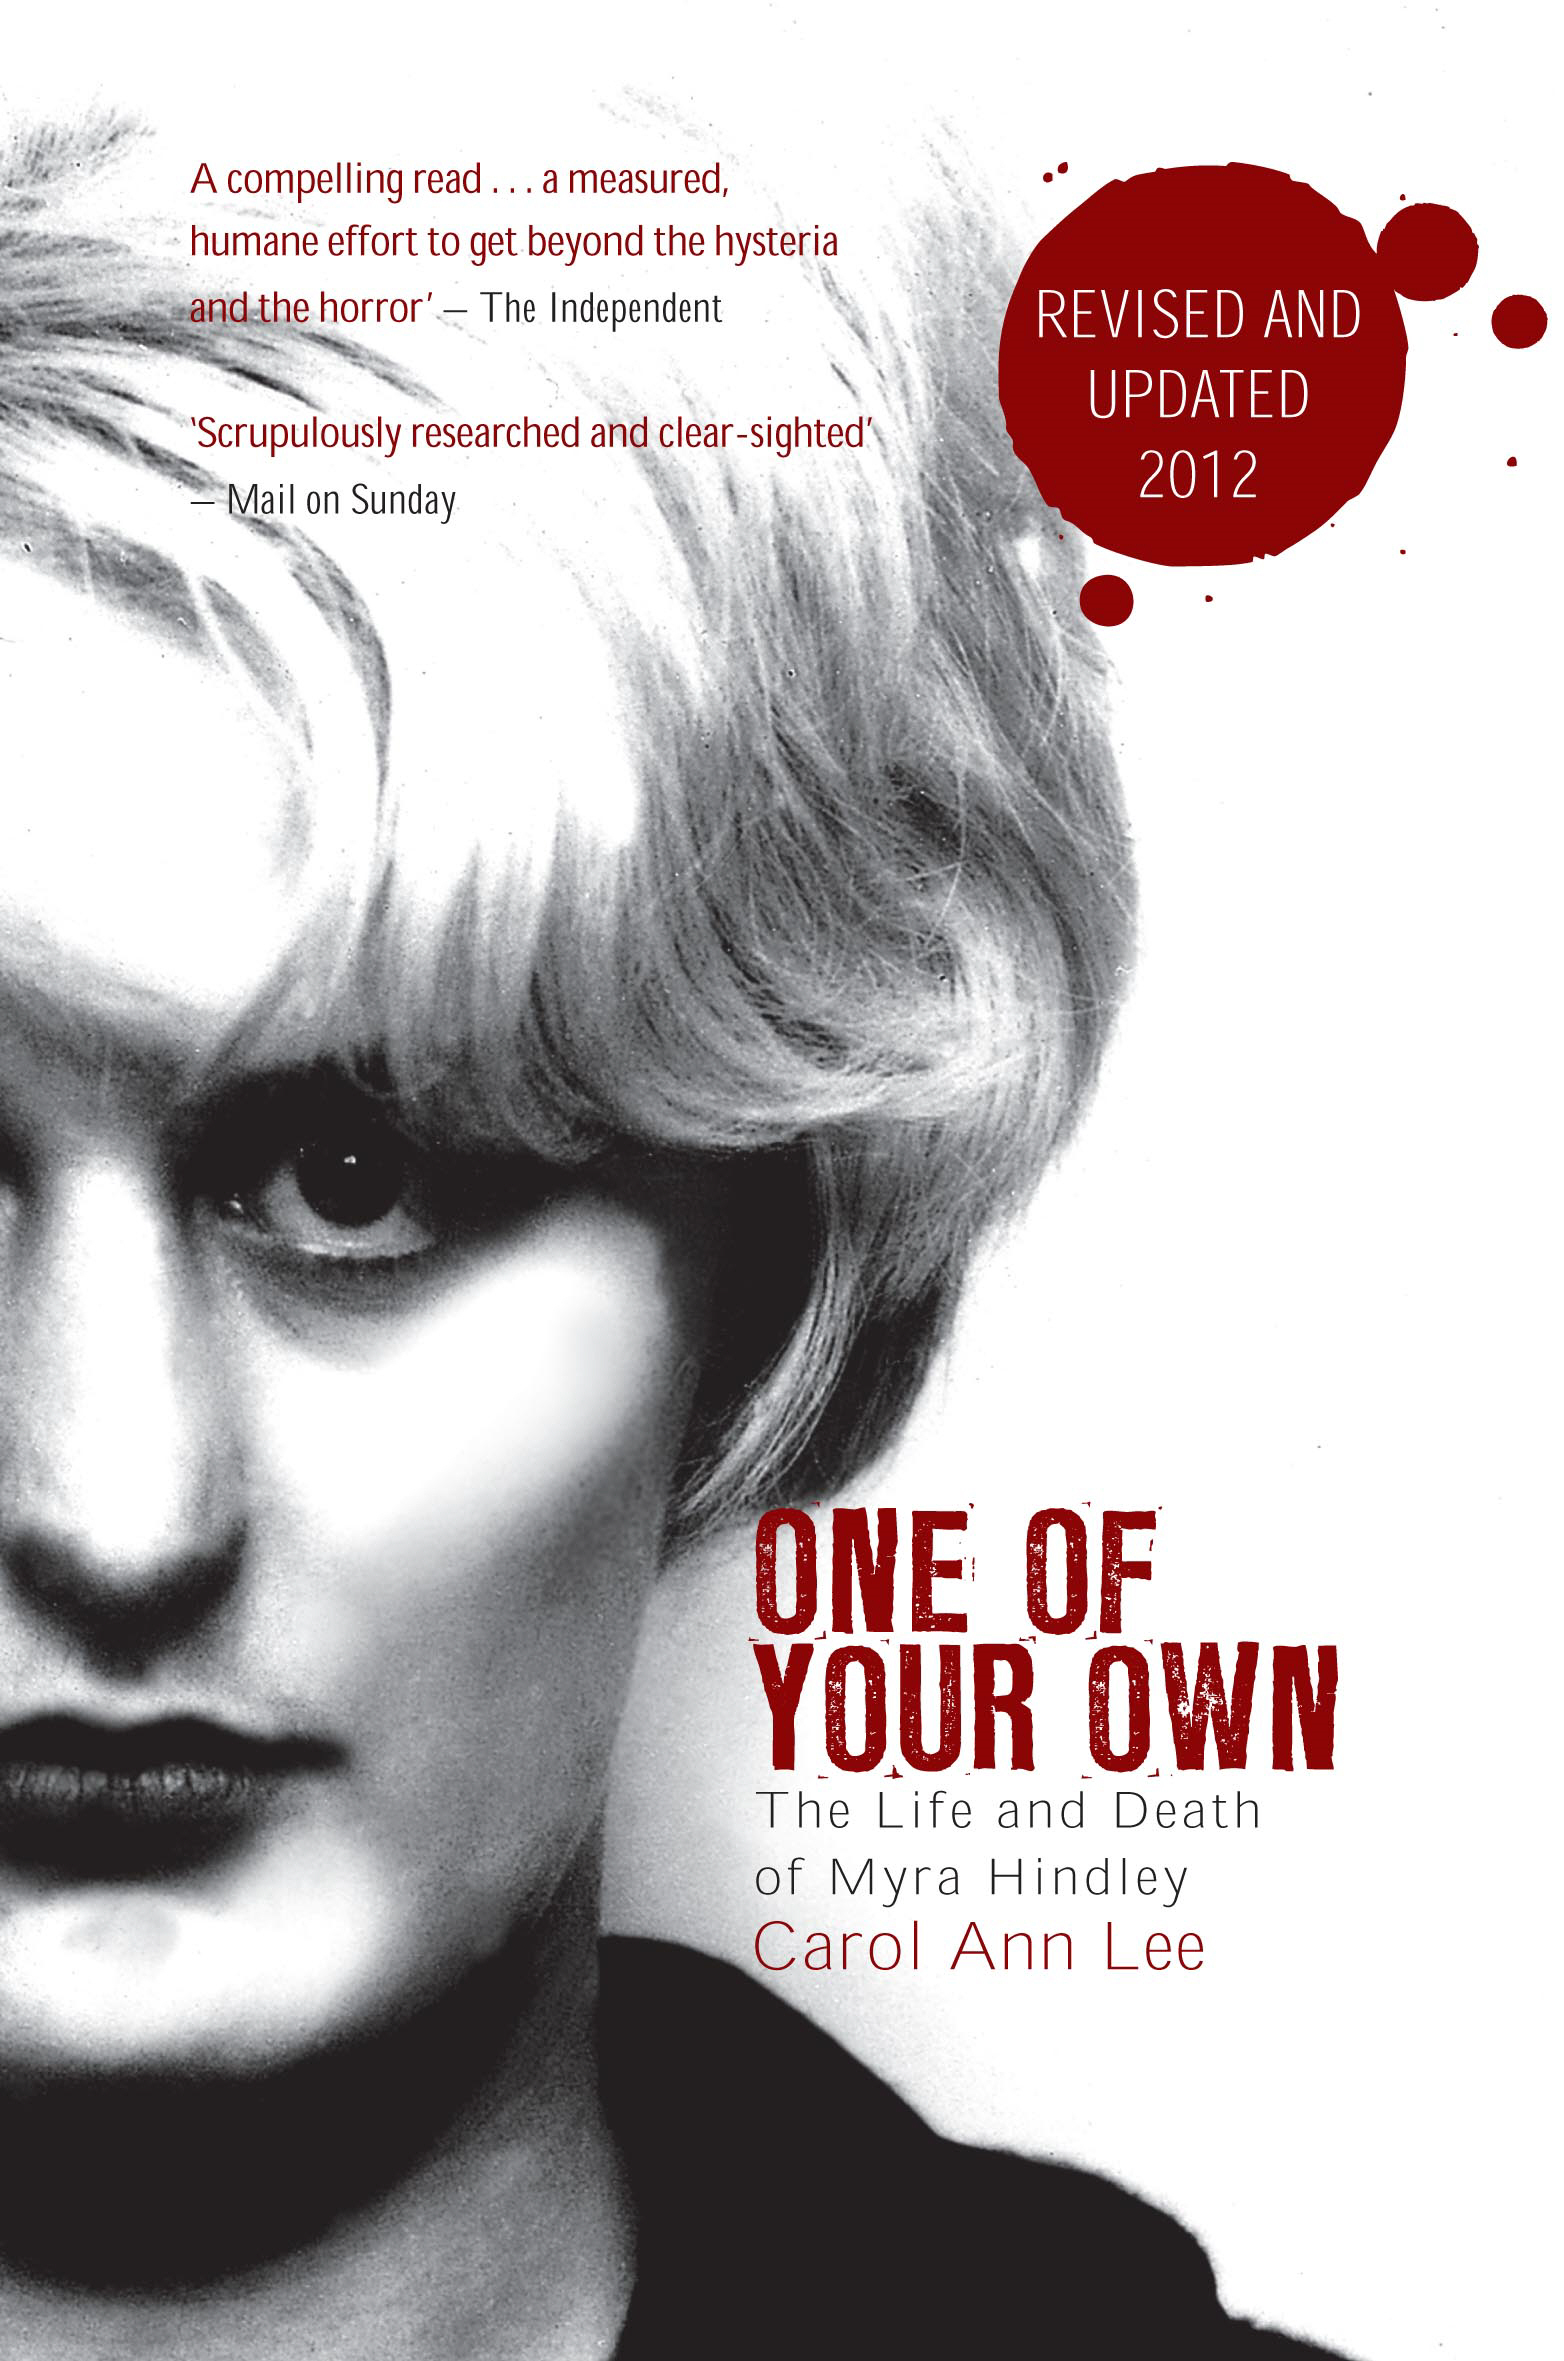 One of Your Own The Life and Death of Myra Hindley